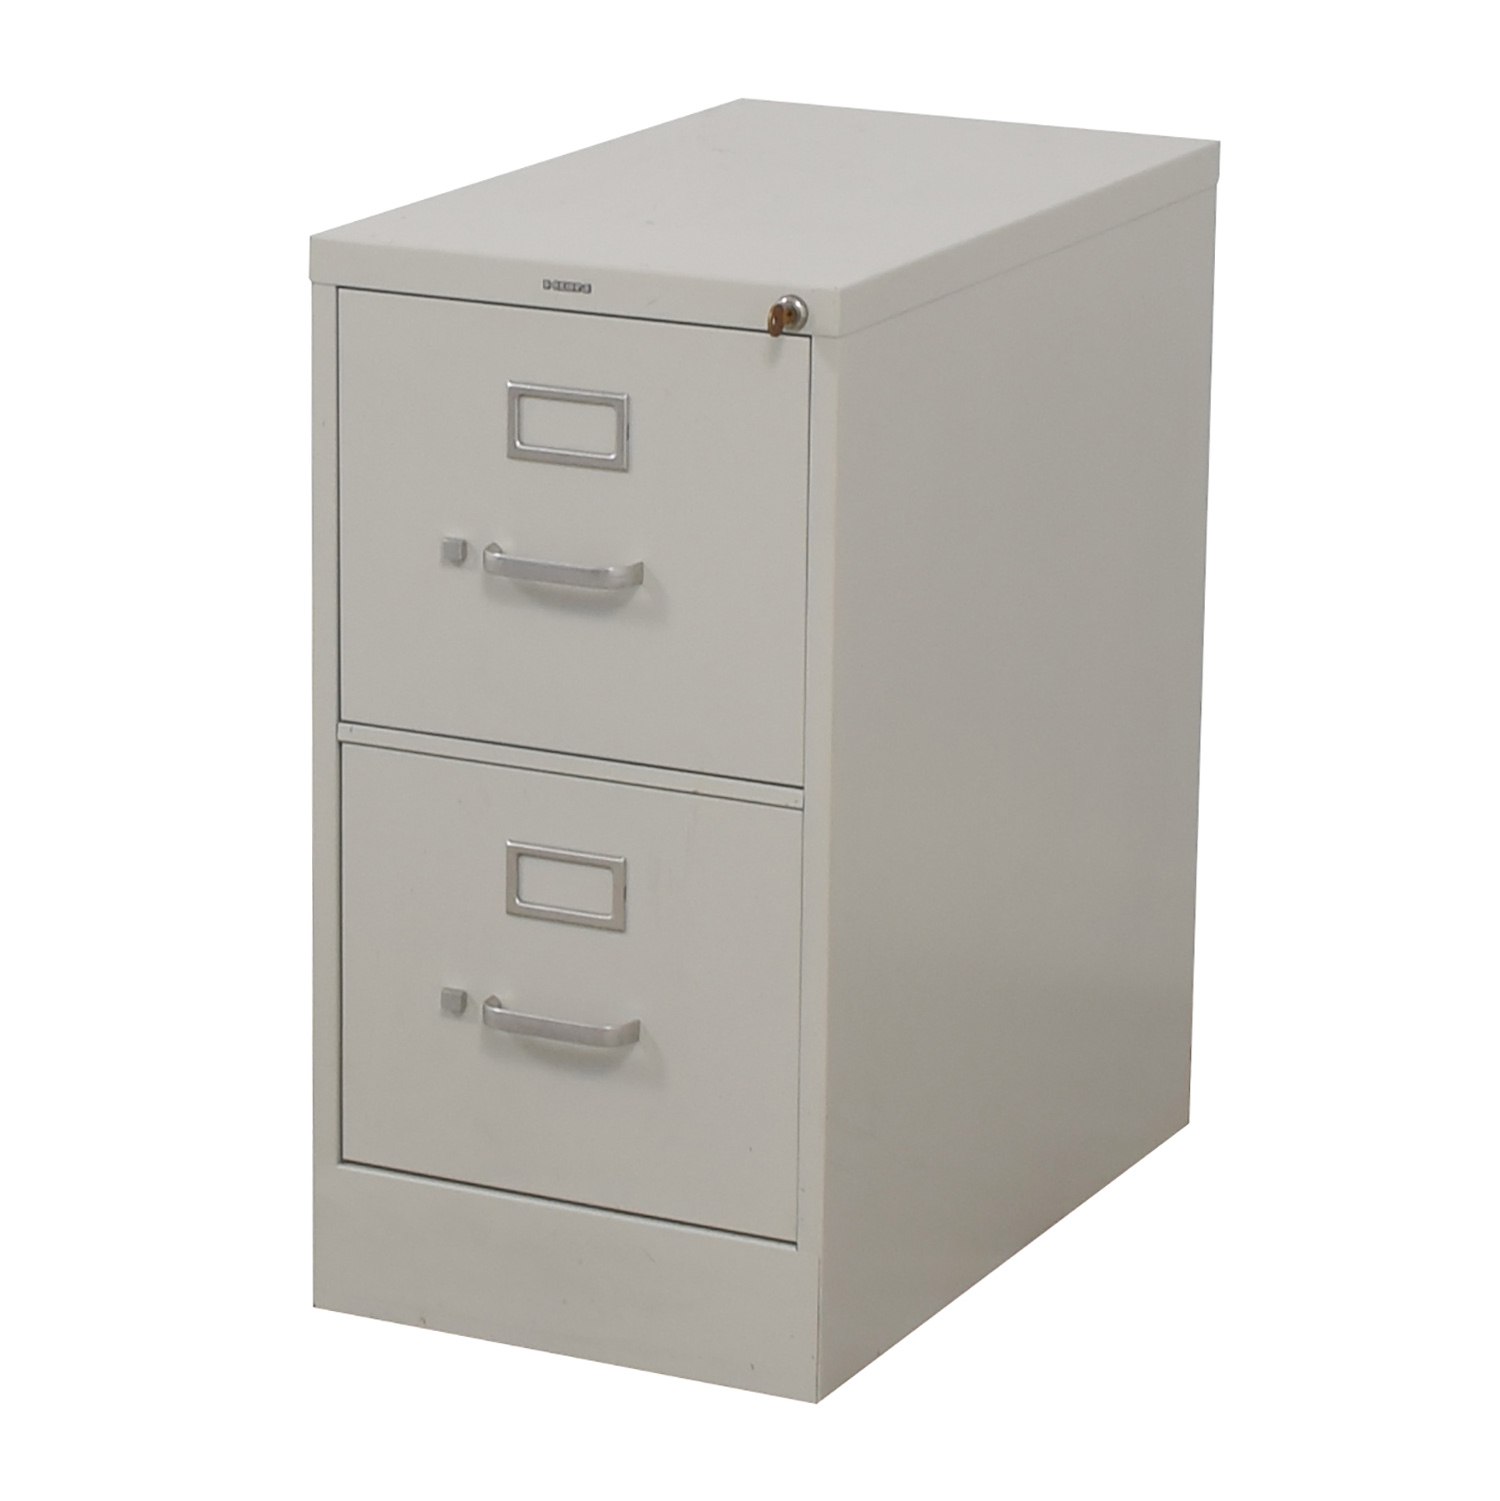 Hon HON Vertical Beige Two-Drawer File Cabinet used